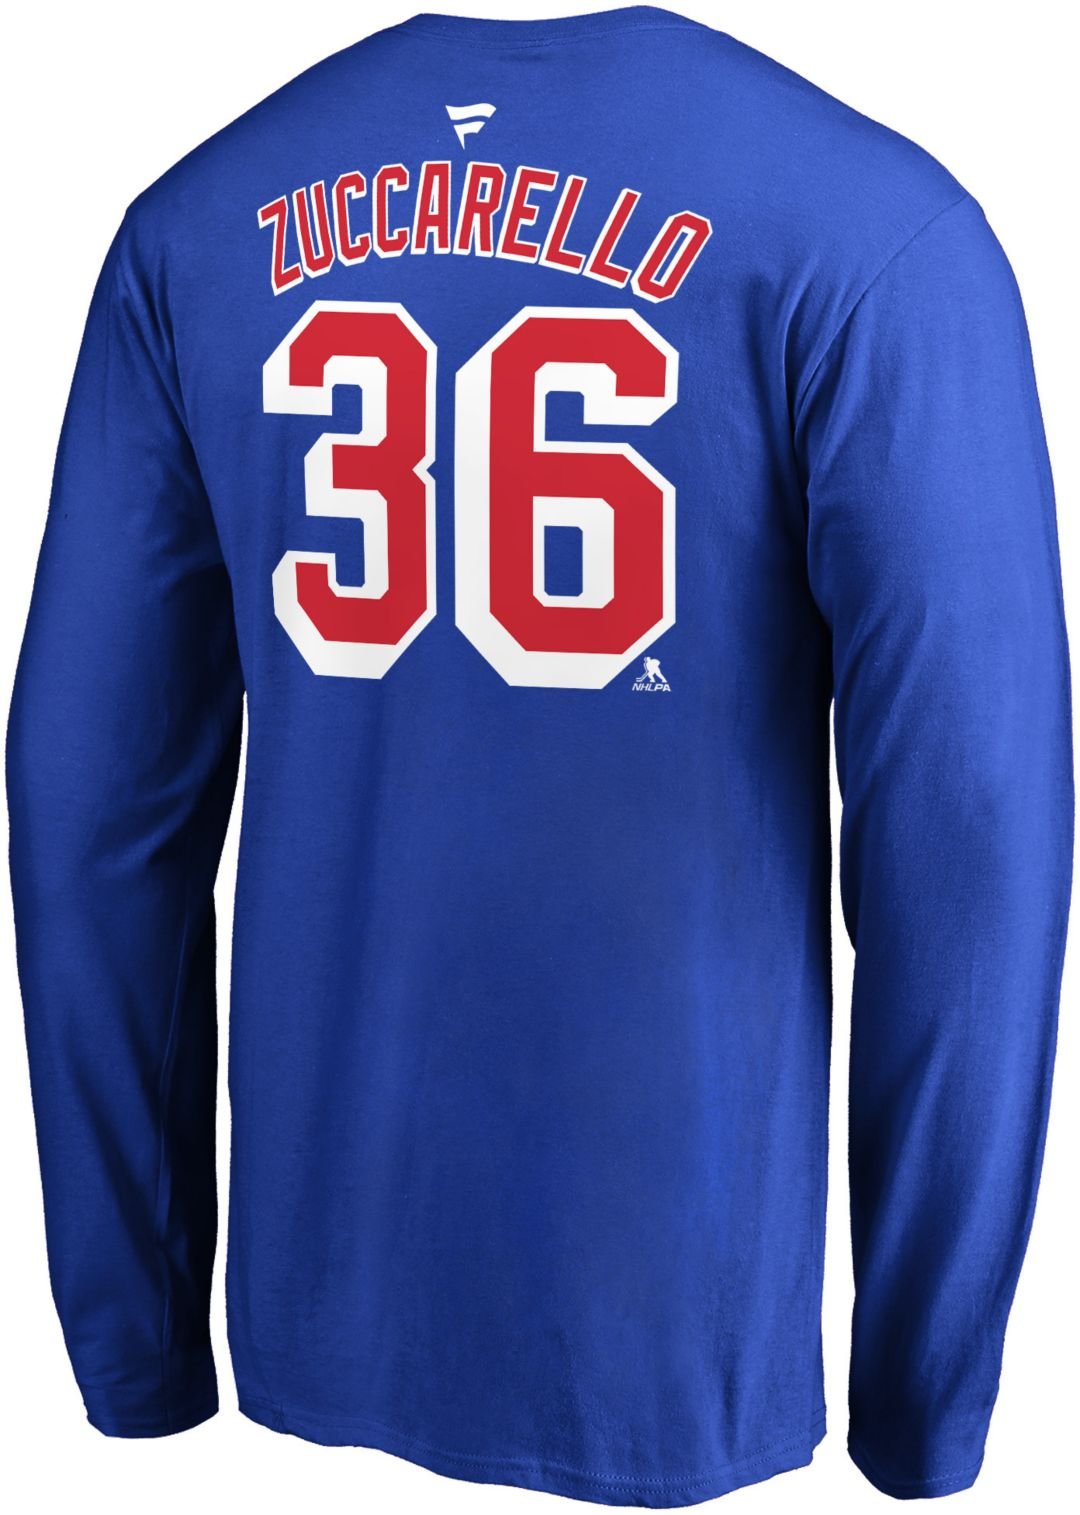 buy popular 7ee3e 937d5 NHL Men's New York Rangers Mats Zuccarello #36 Royal Long Sleeve Player  Shirt